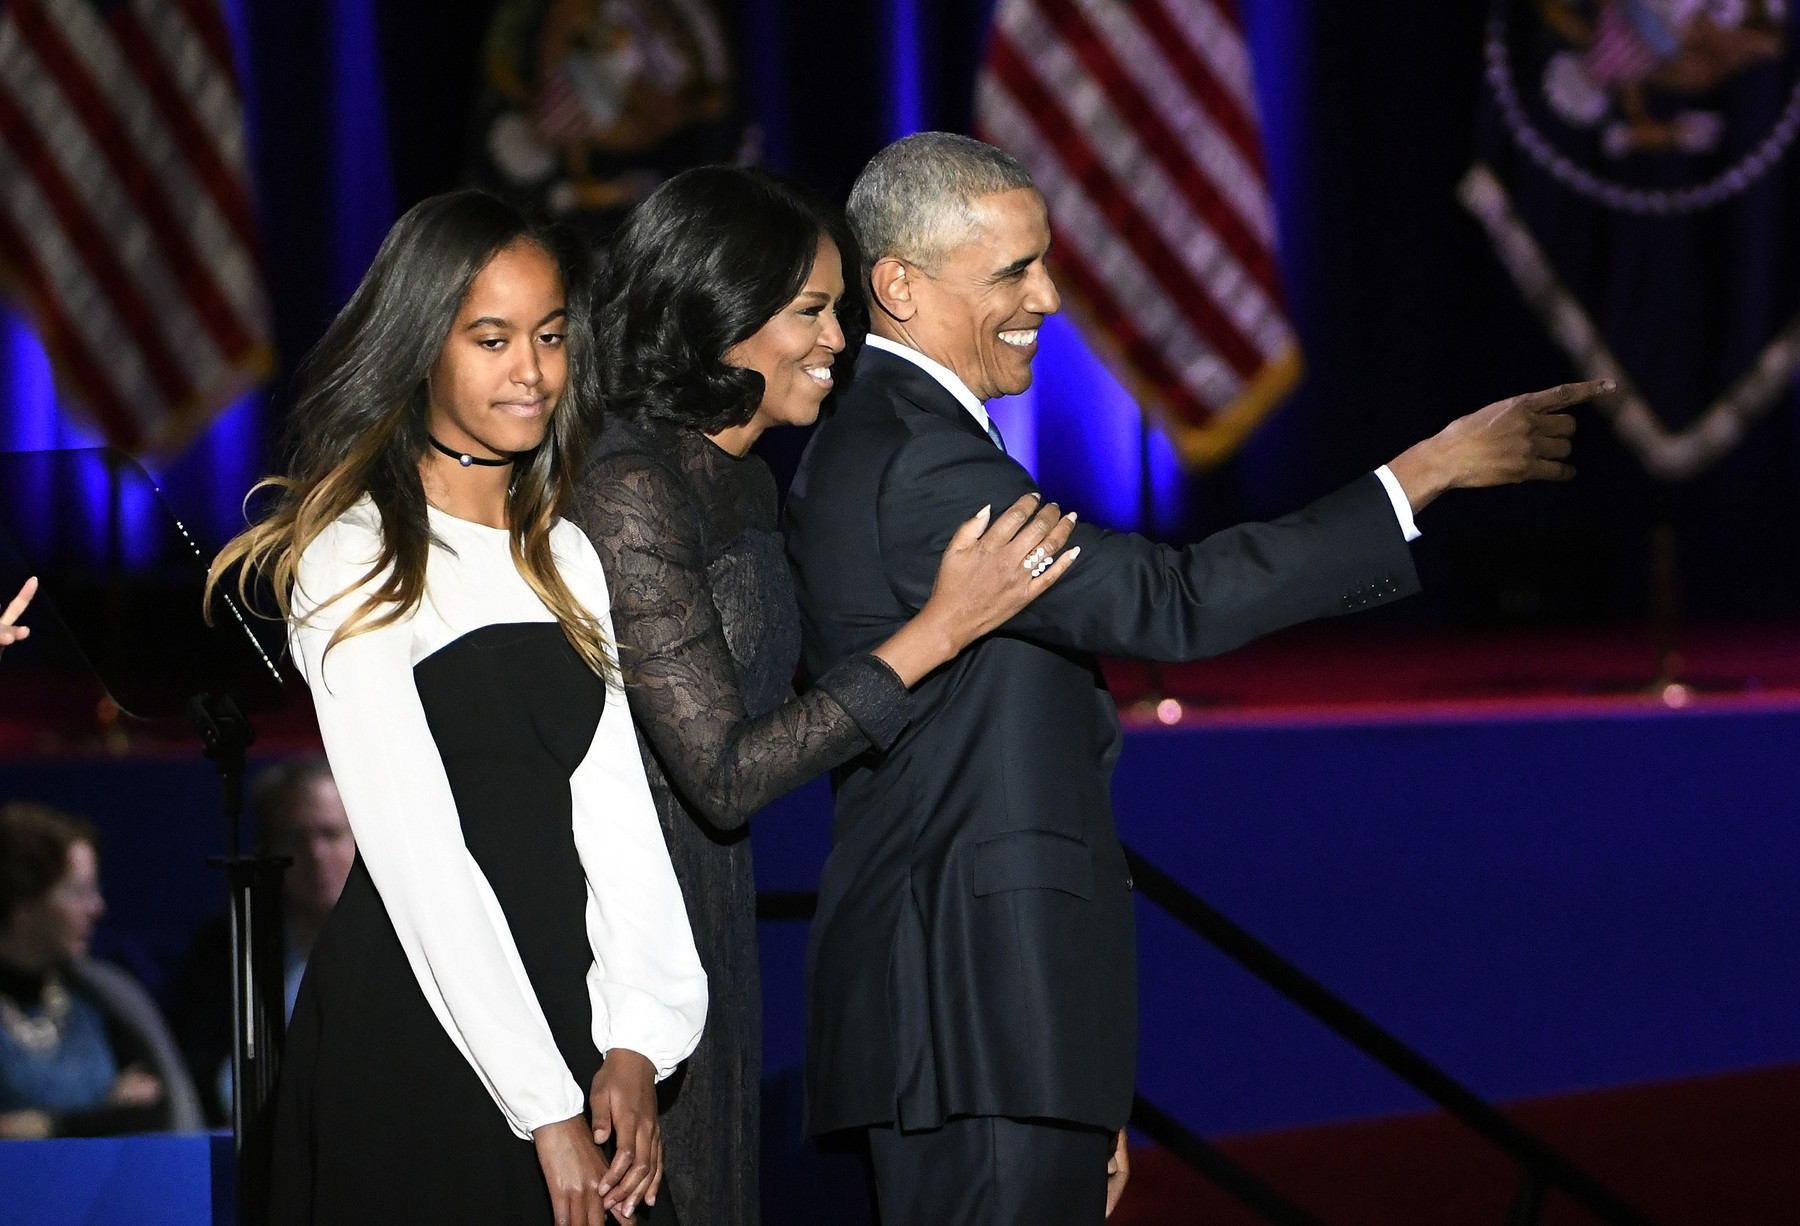 U.S. President Barack Obama (R-L) stands on stage with his wife Michelle and daughter Malia after delivering his farewell address to a crowd of supporters at McCormick Place in Chicago on January 10, 2017.      Photo by /UPI, Image: 310502957, License: Rights-managed, Restrictions: , Model Release: no, Credit line: David Banks / UPI / Profimedia